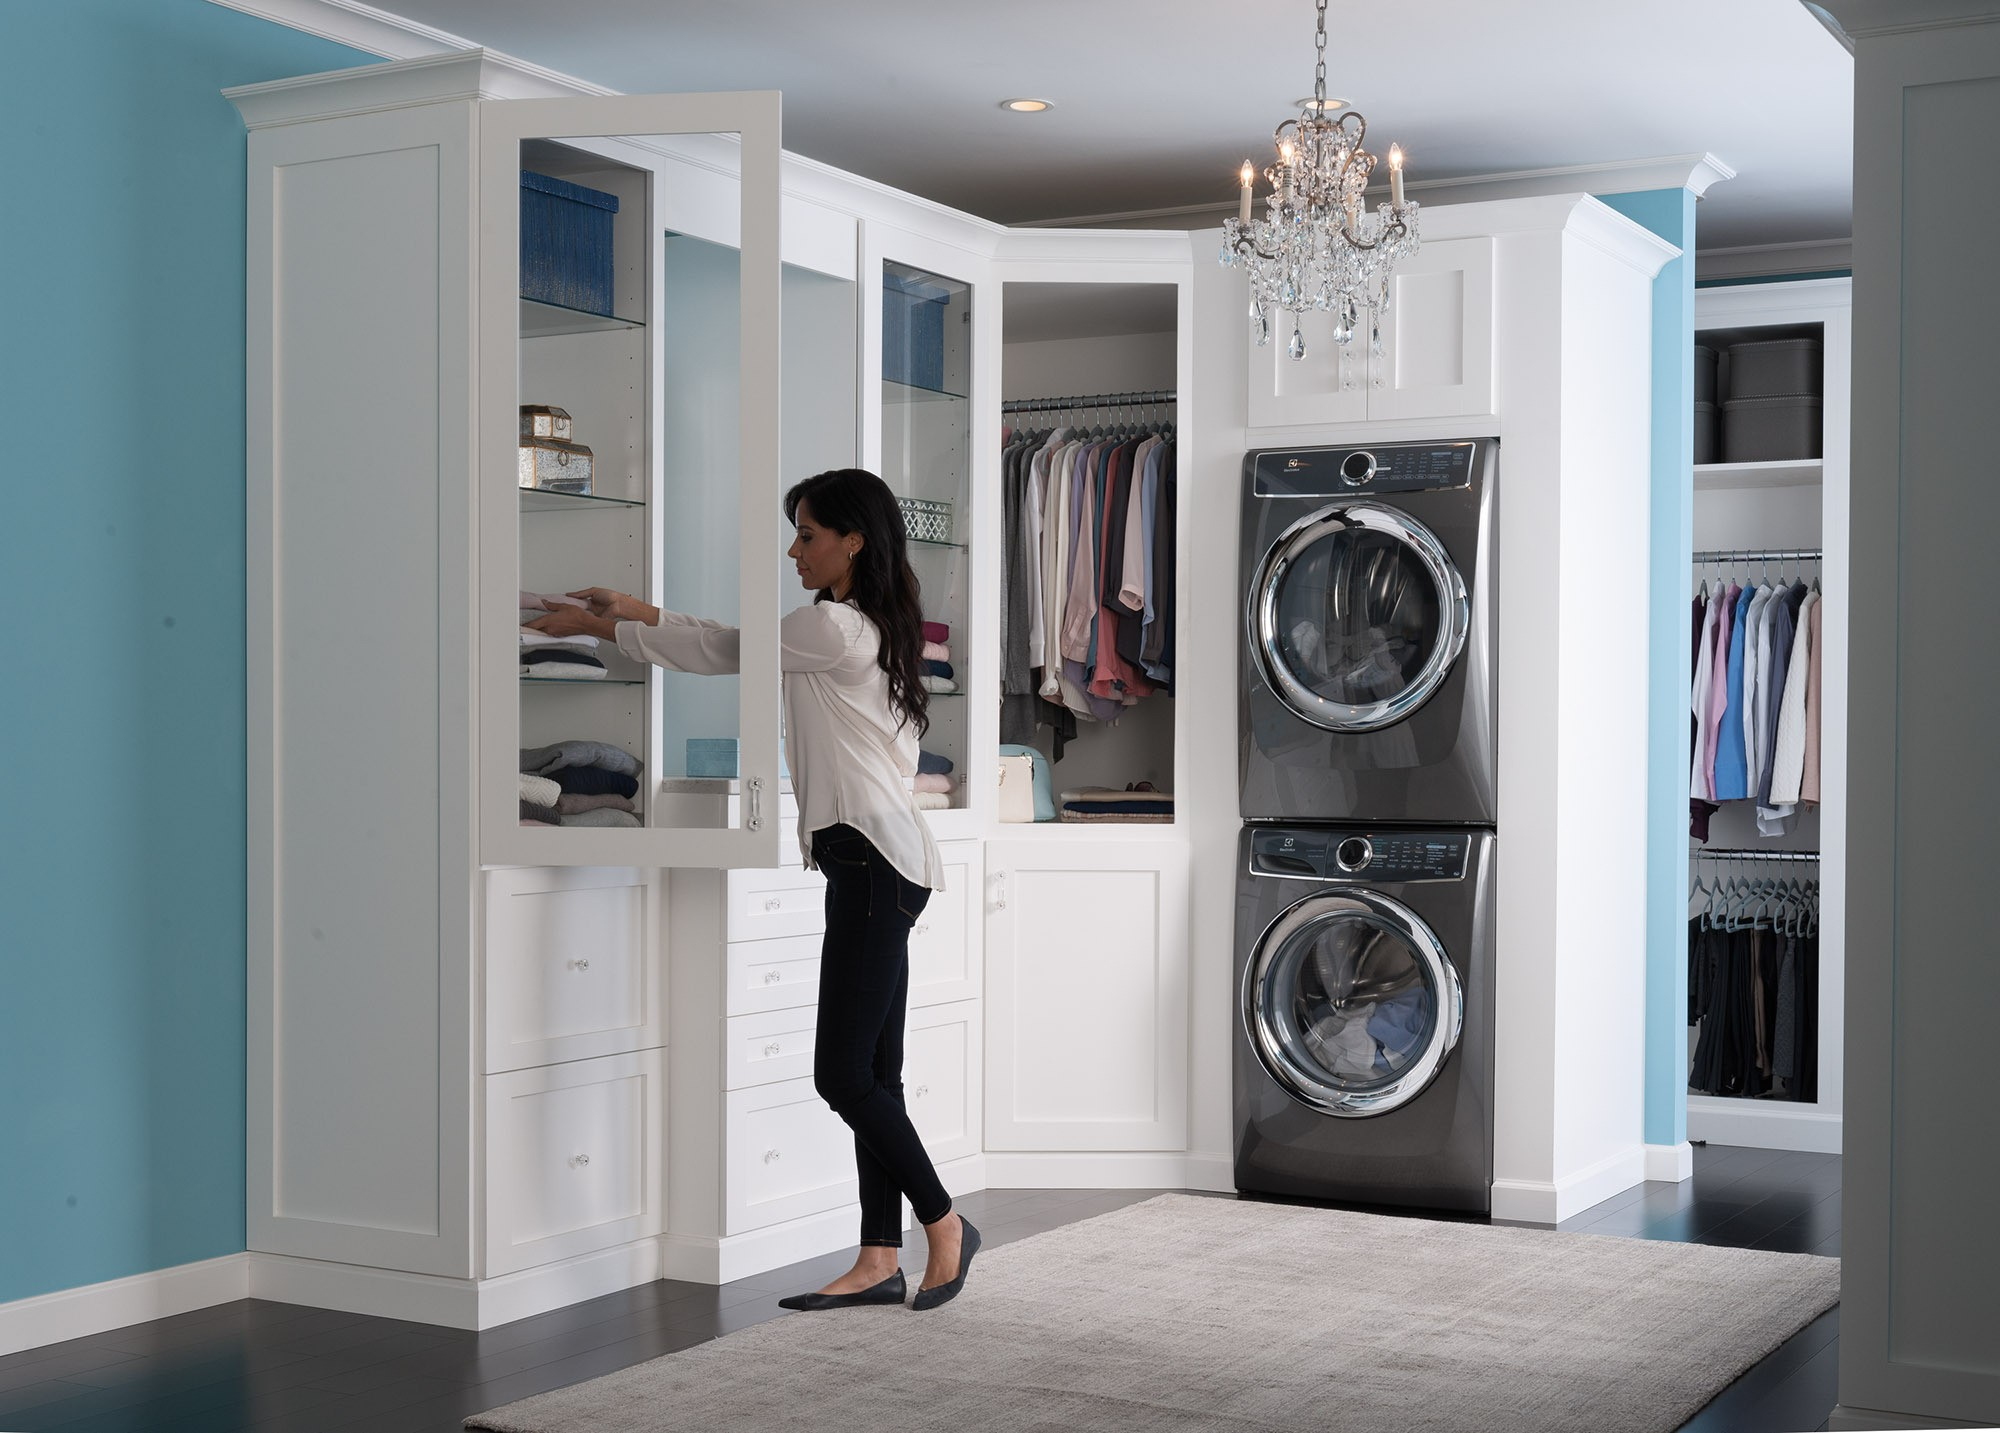 inch stainsoak steam smartboost system pedestal ft cgi perfect bin option luxcare load with wash washer technology vibrant ajmadison front for cu electrolux